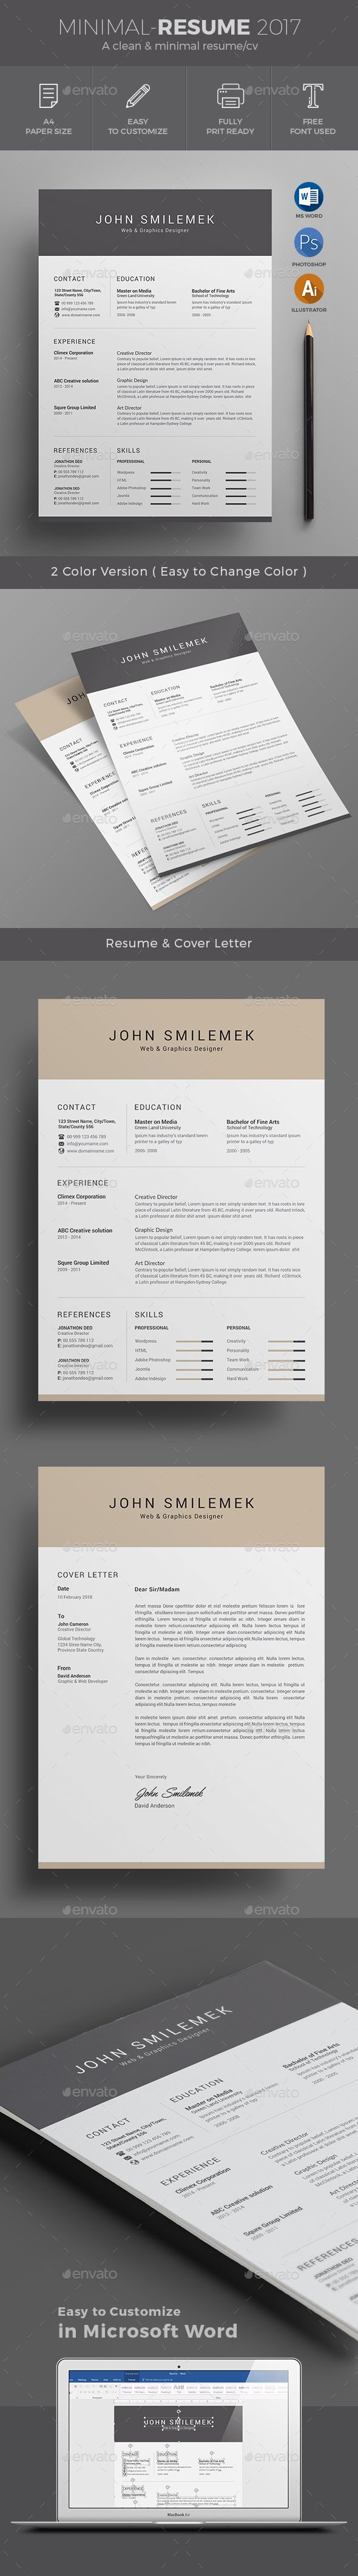 Best Resume Images On   Design Resume Resume And